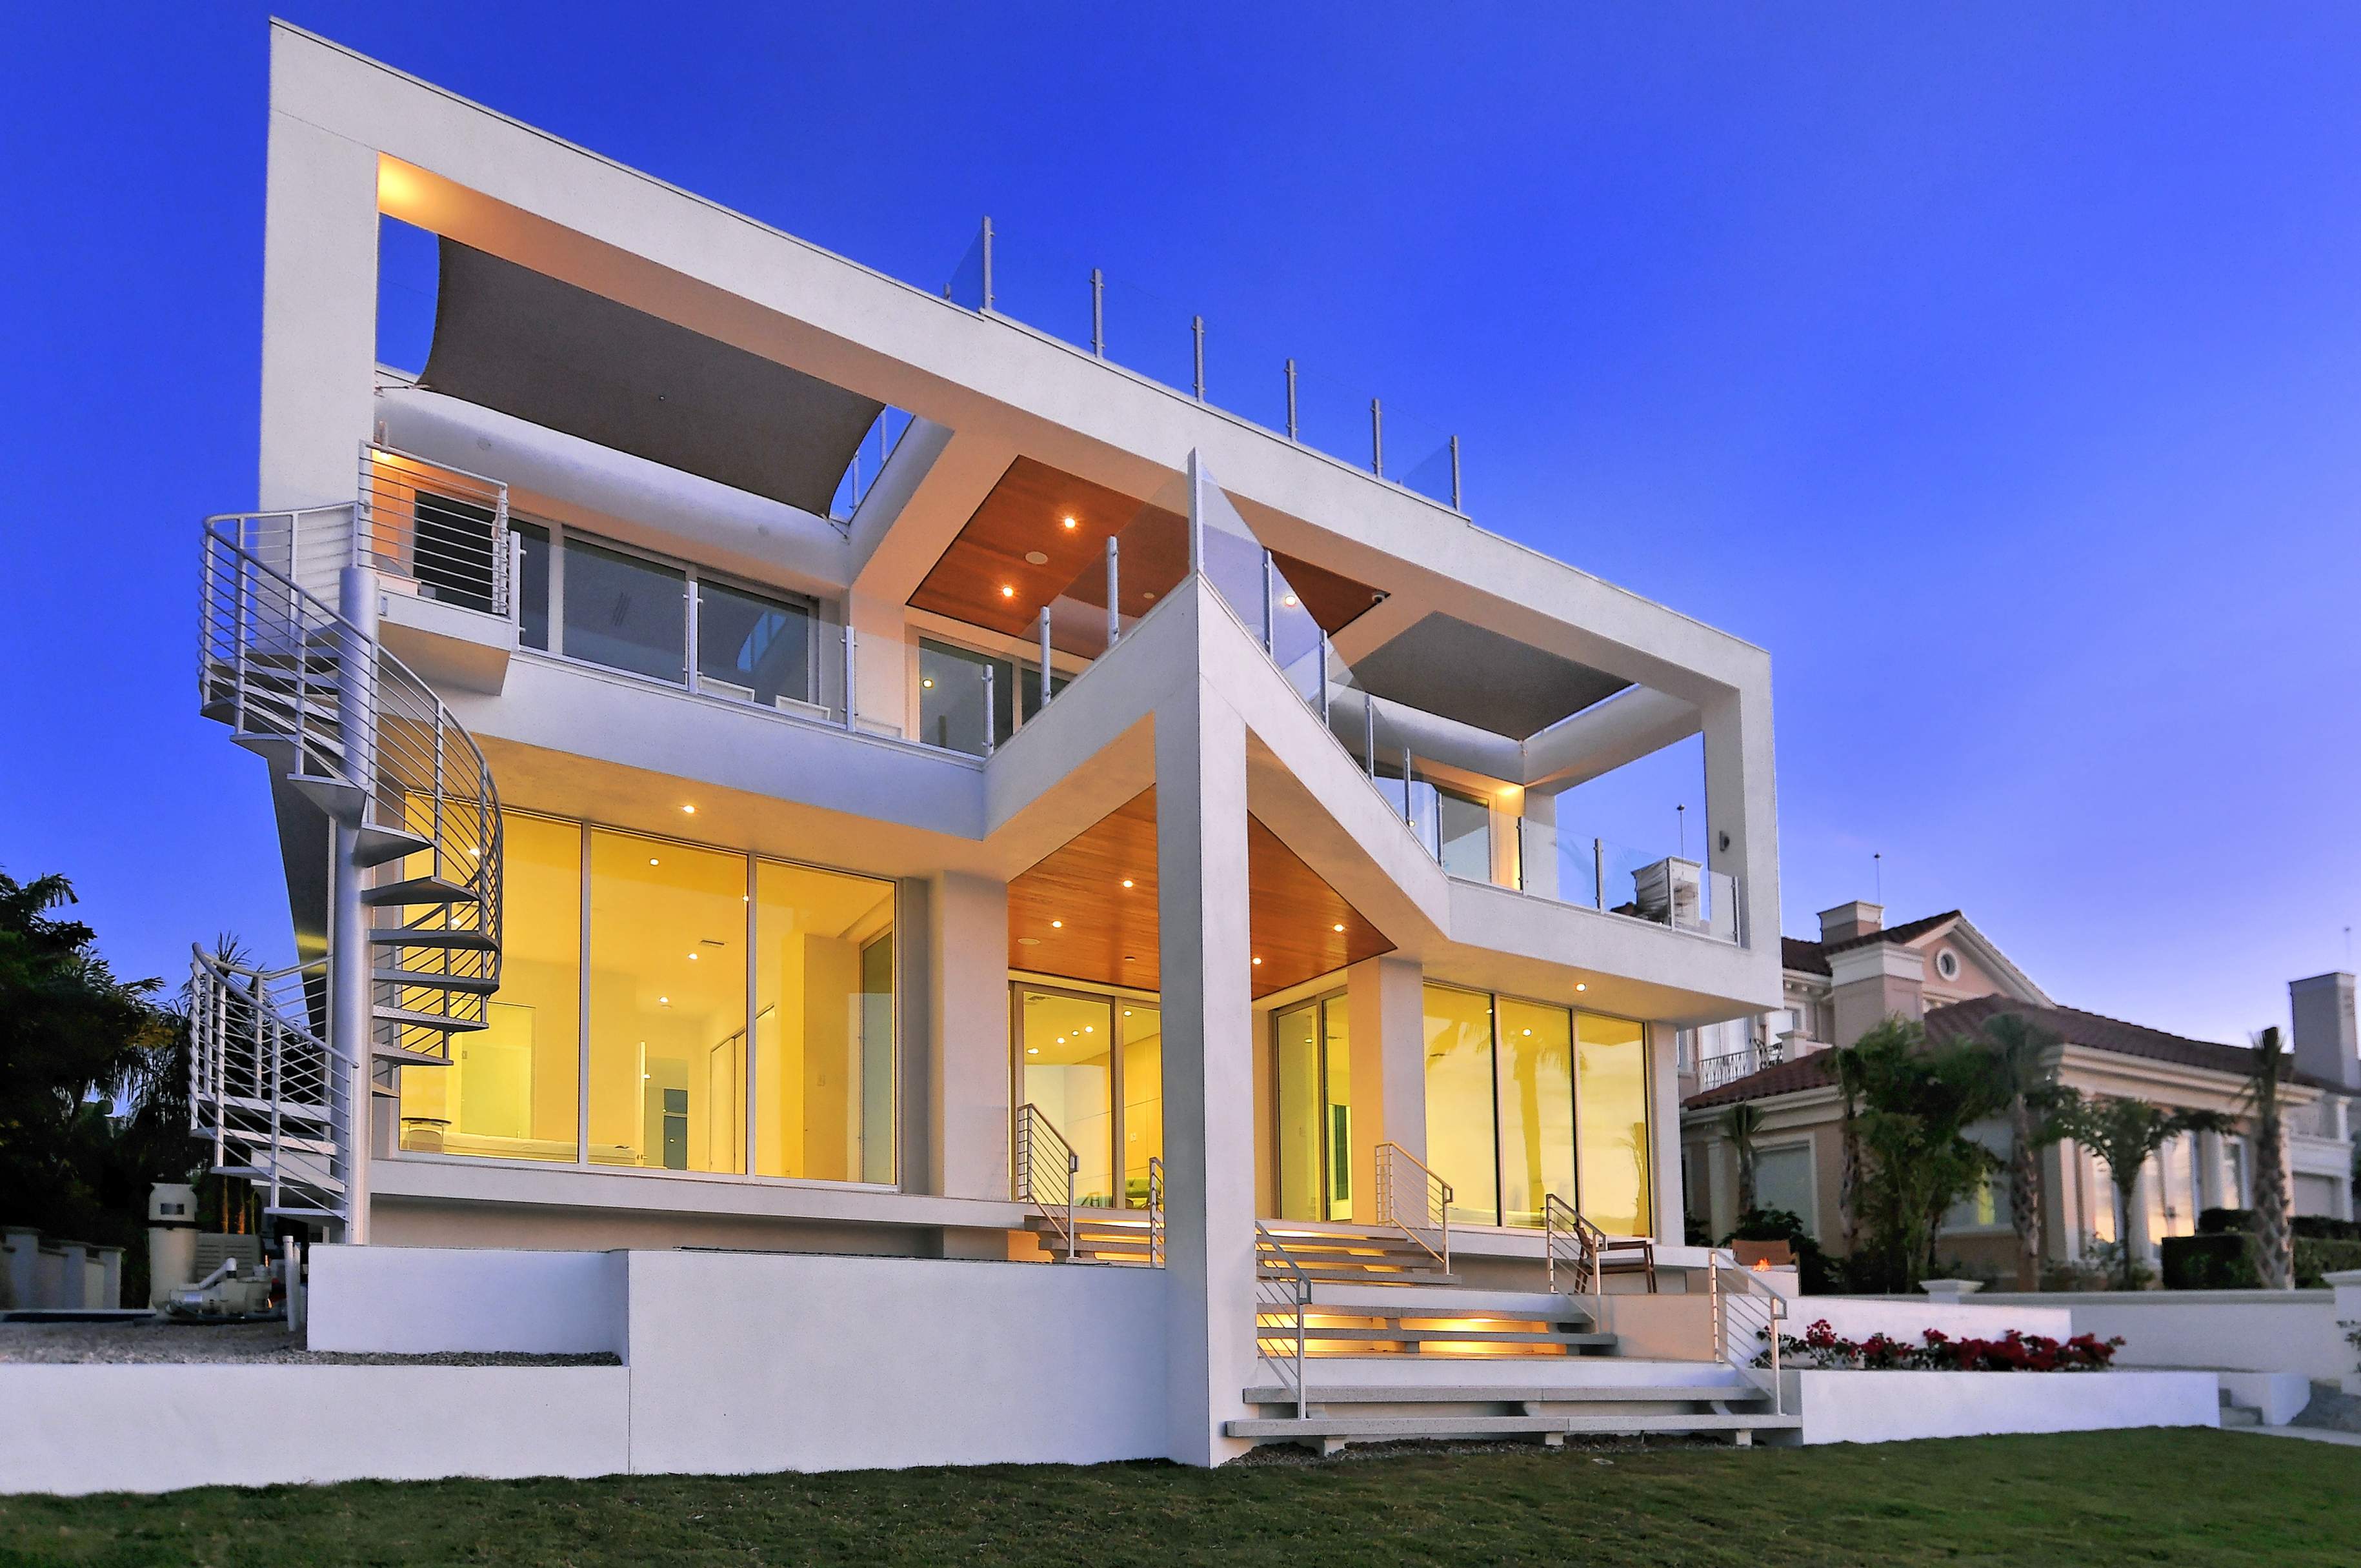 The picture frame house residential architect dsdg for Florida residential architects